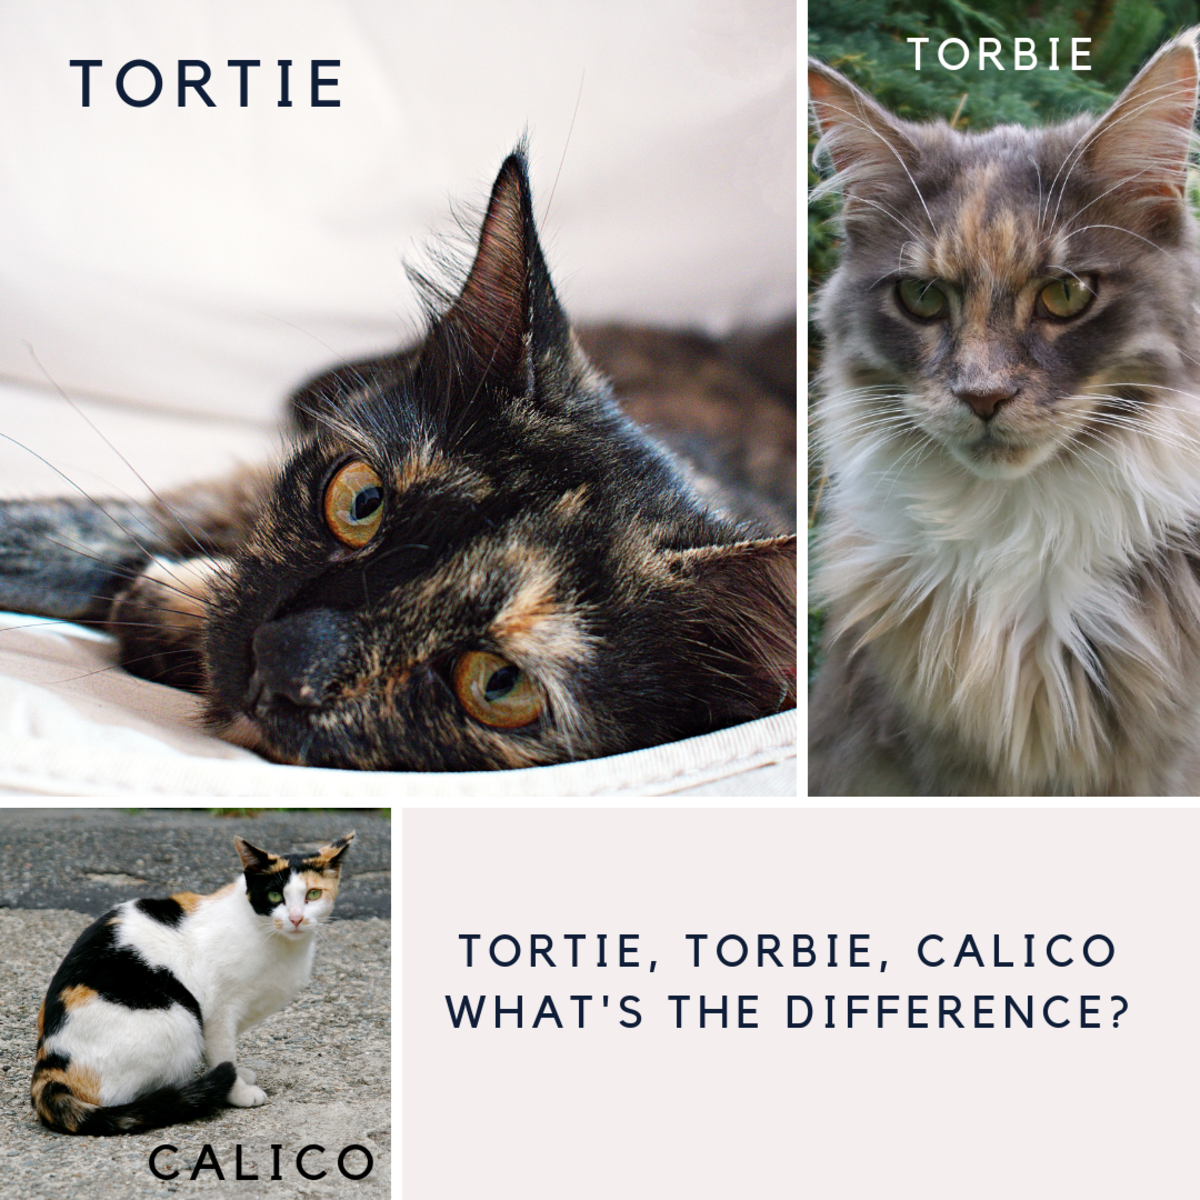 A comparison of a Calico, Torbie, and Tortie.